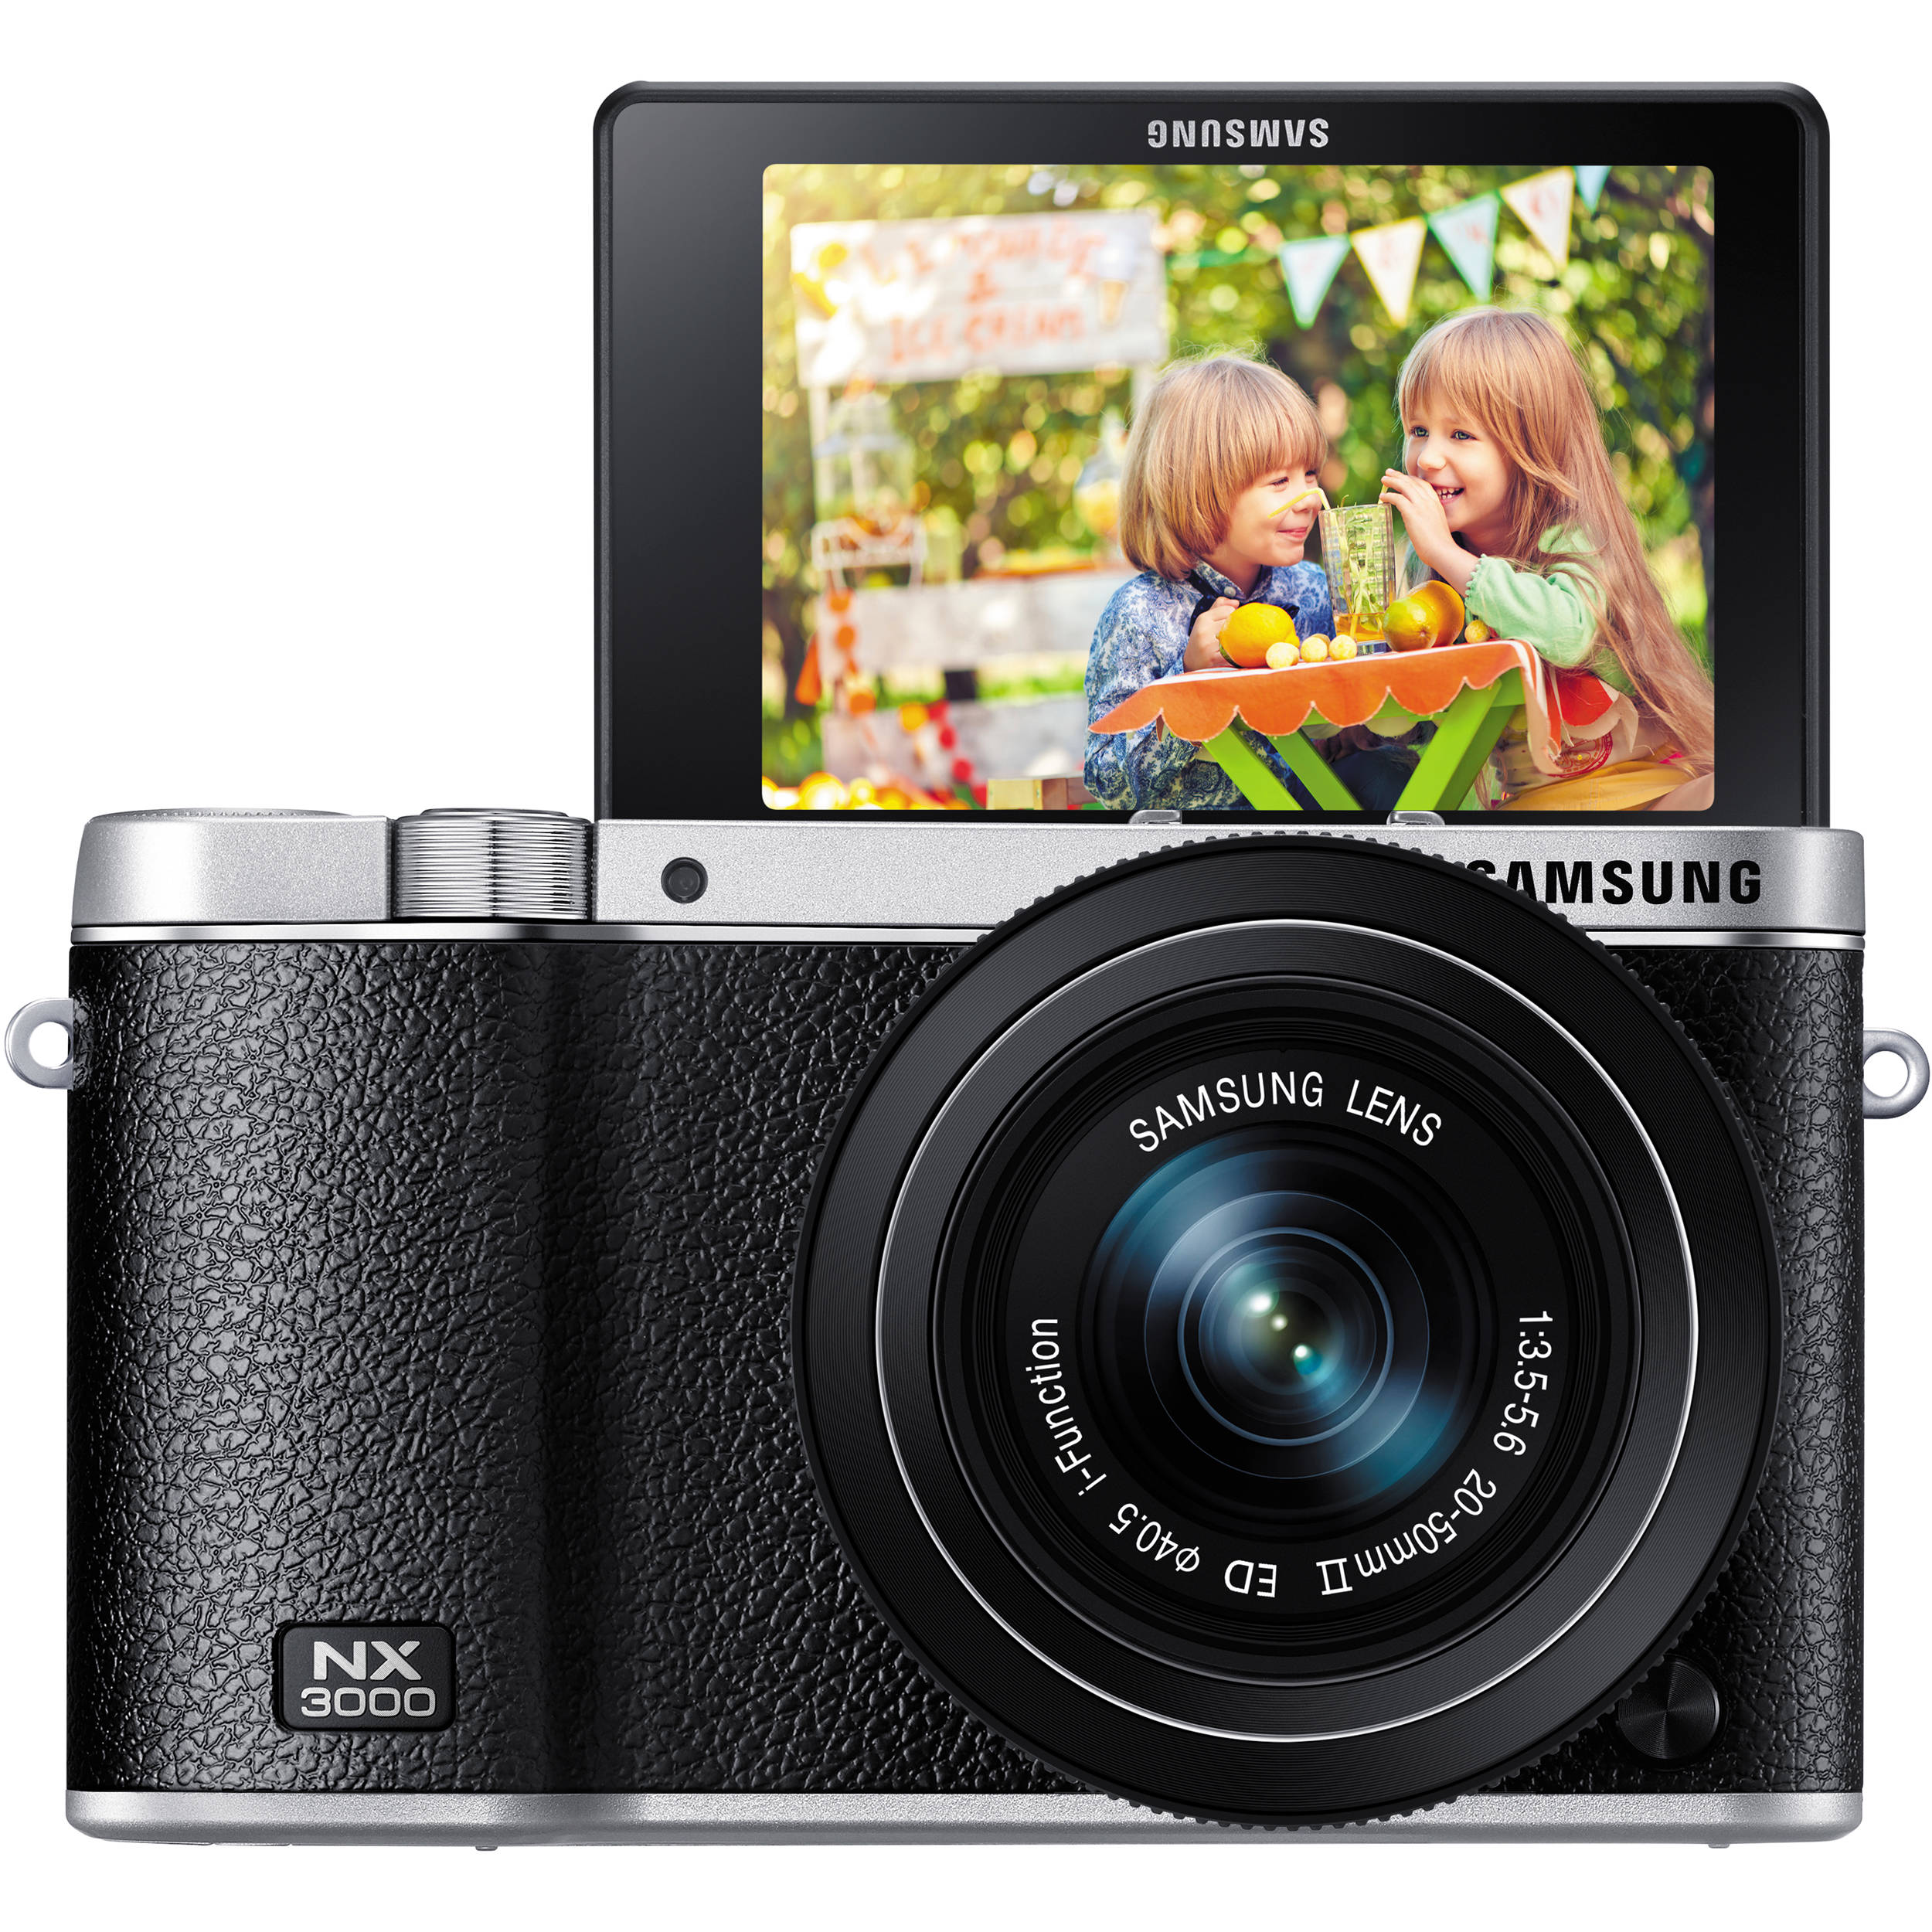 Samsung nx3000 manual for the successor of nx mini   iphone 4s, video.